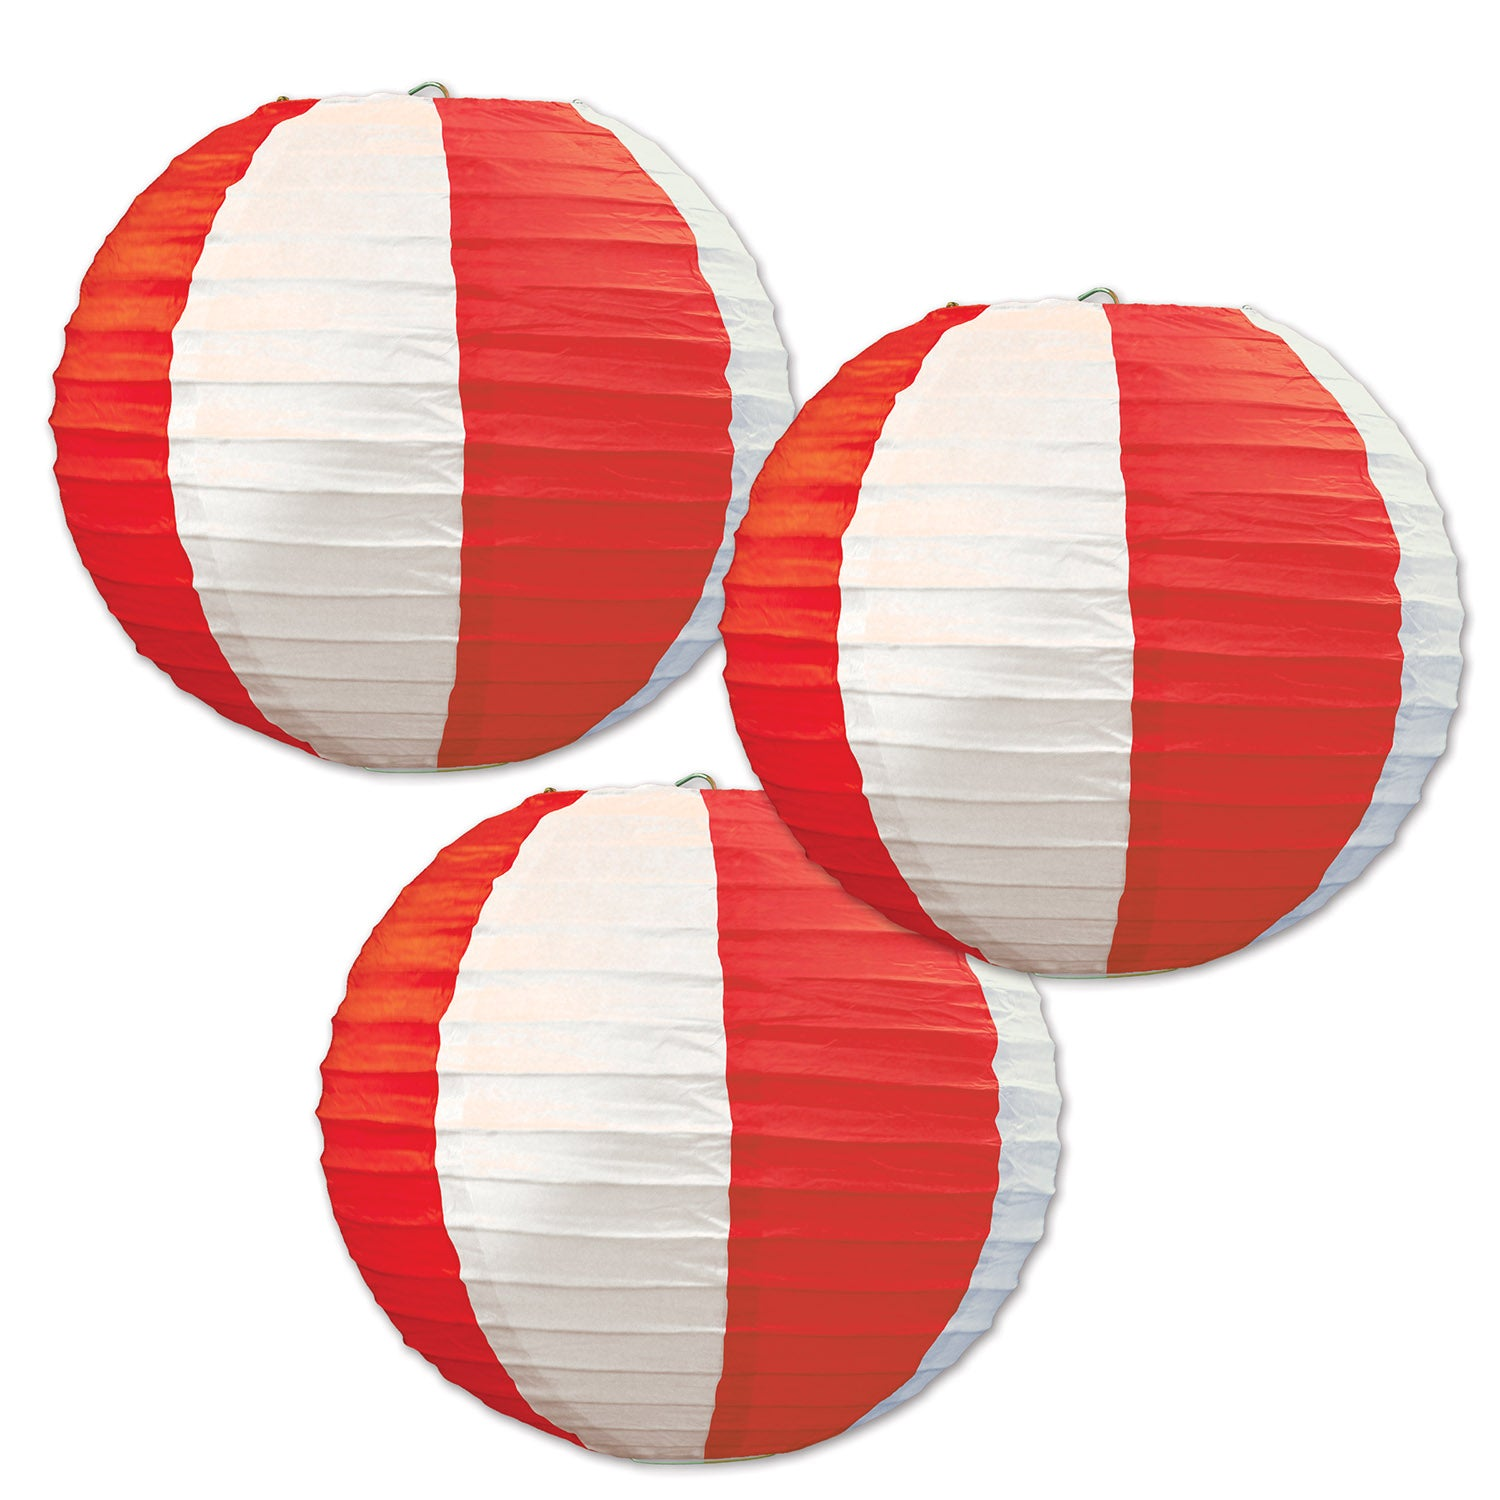 Red & White Stripes Paper Lanterns (3/Pkg) by Beistle - Circus Theme Decorations